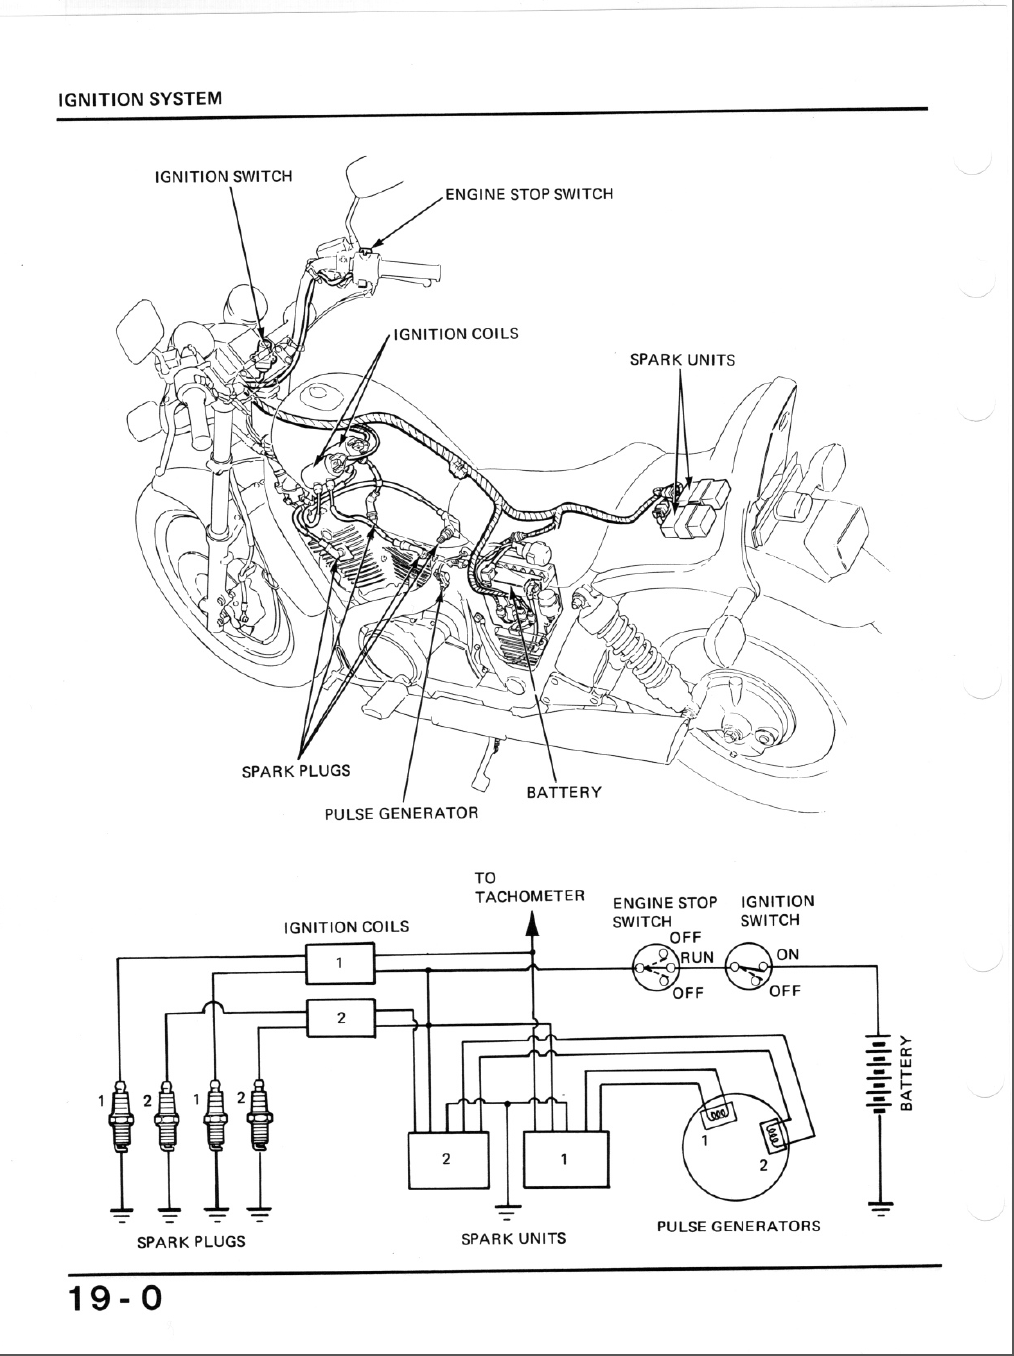 1984 honda shadow wiring diagram